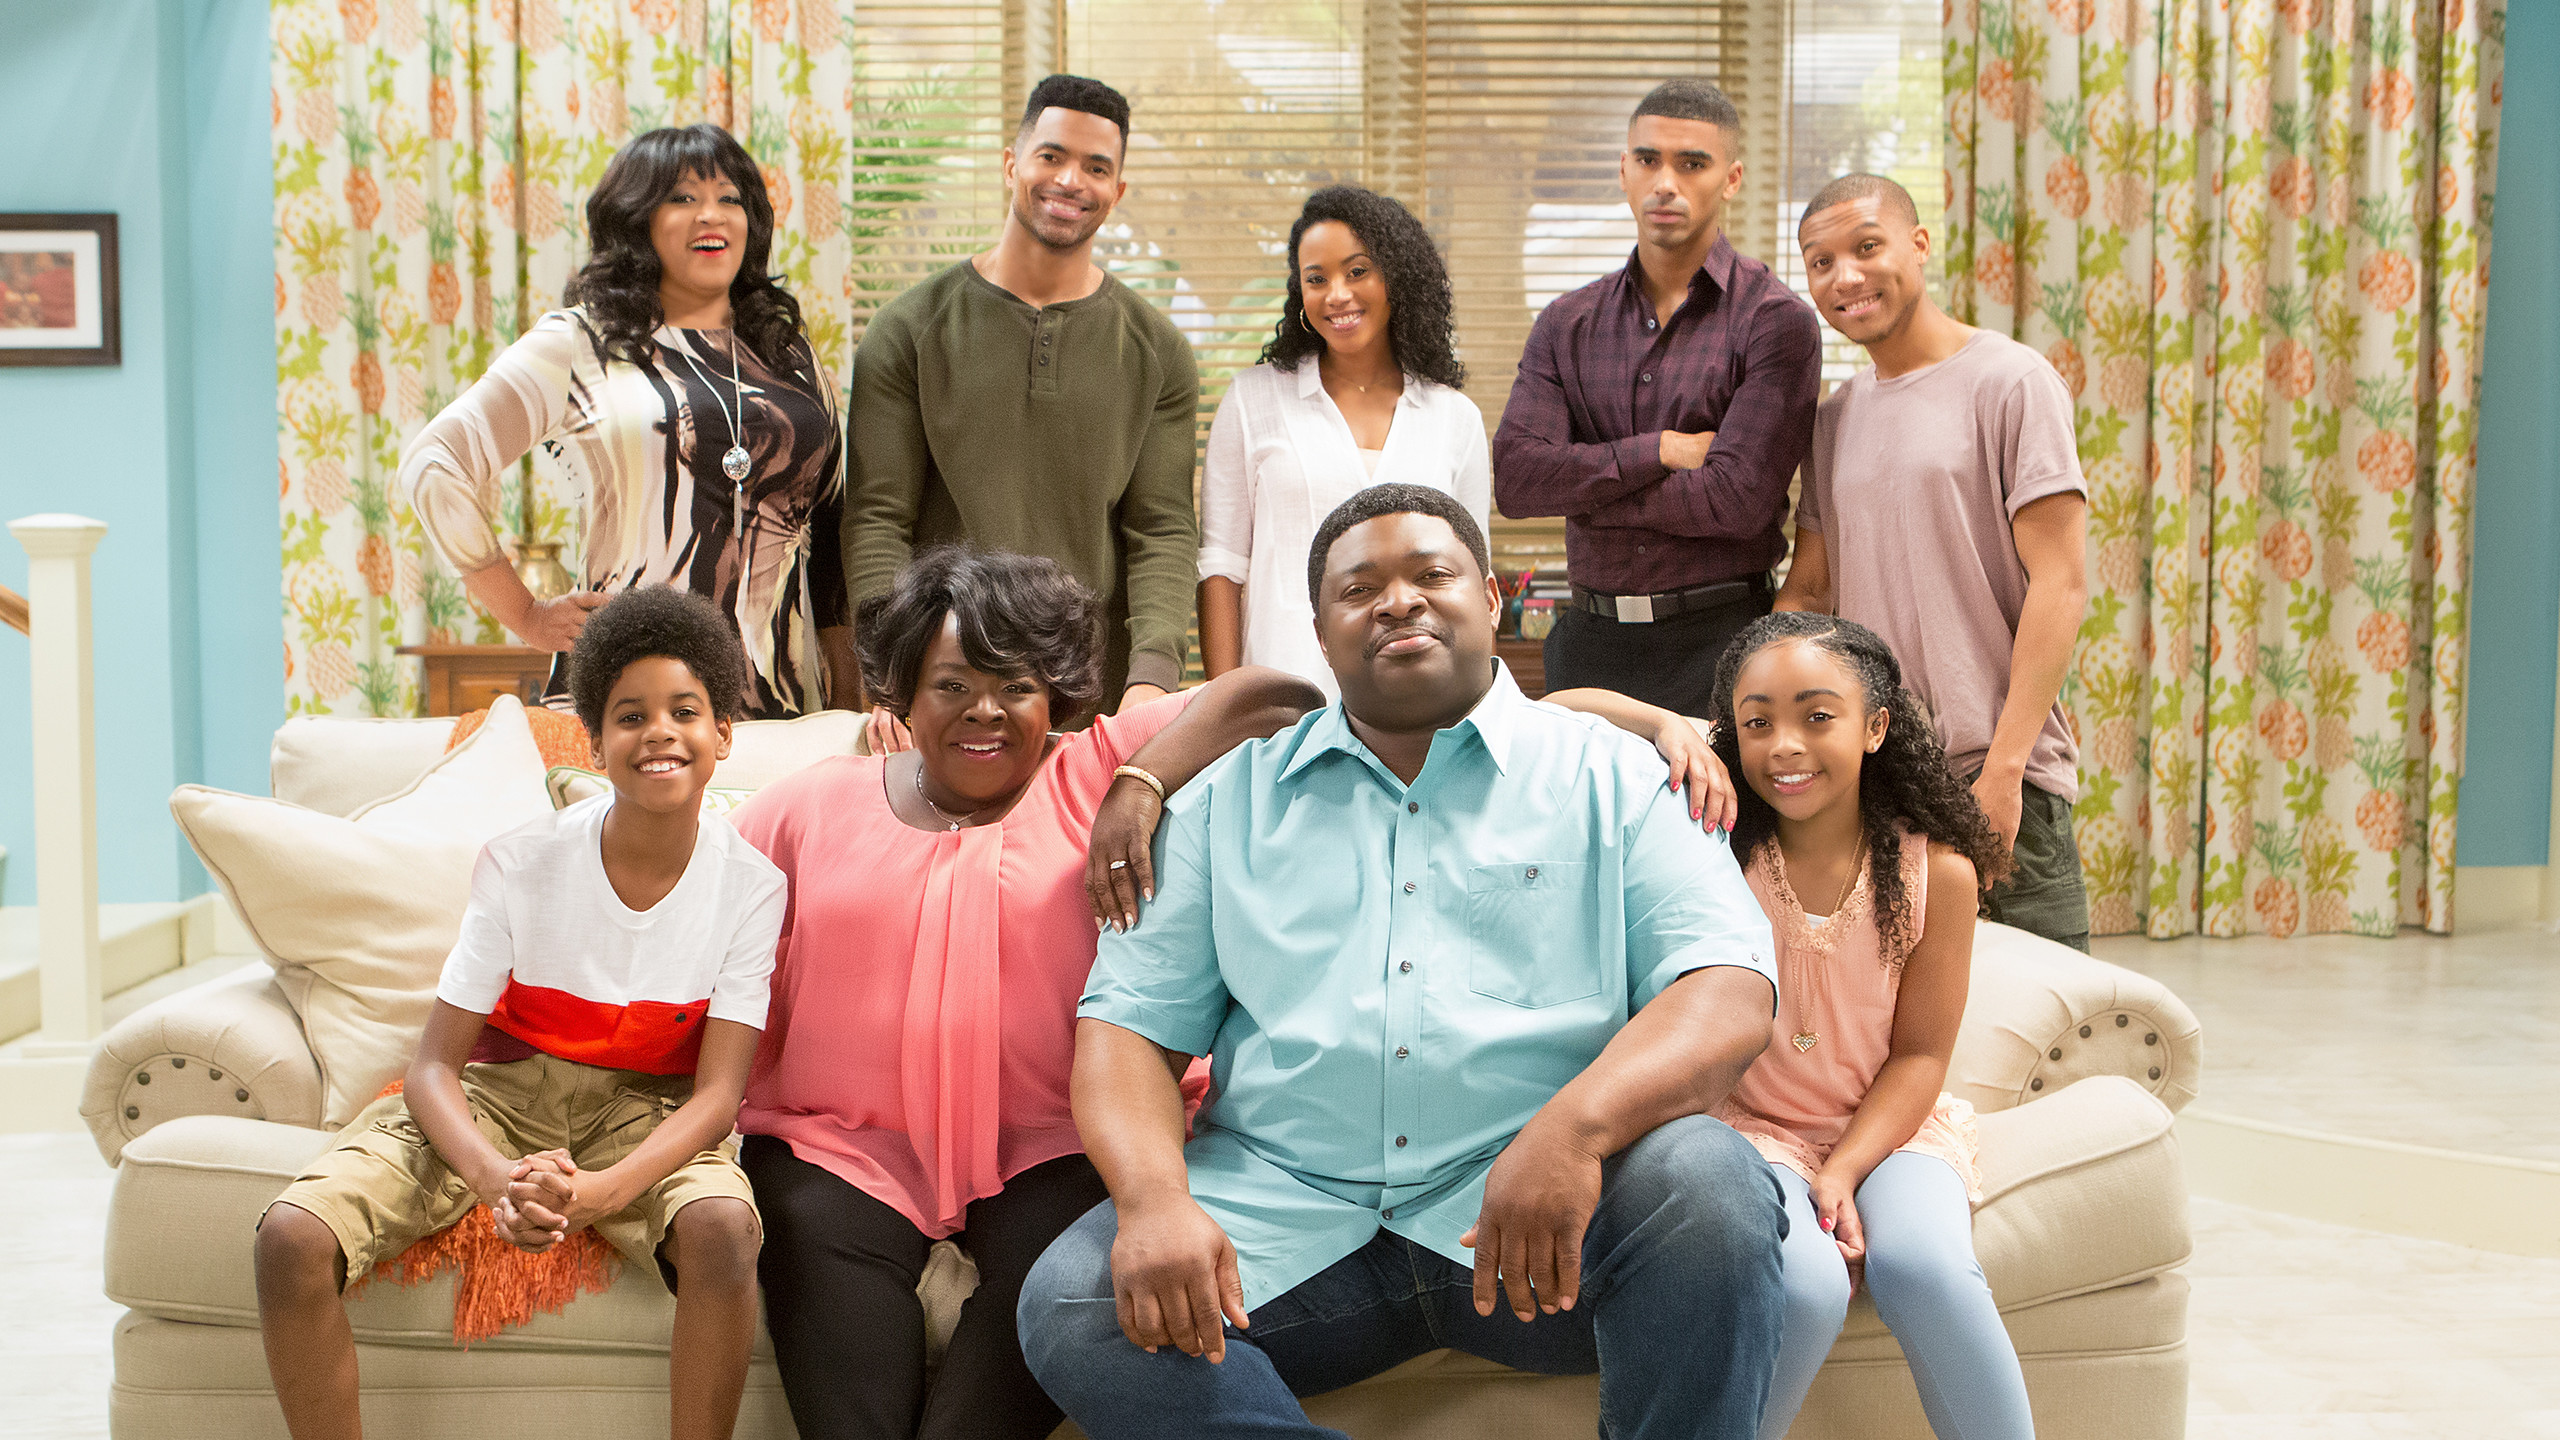 Tyler Perryu0027s House Of Payne Gets A Spin Off Show This Time Instead Of TBS,  Itu0027s On OWN! The Paynes Will Be The New Name Featuring The Stars Of The Hit  TBS ...